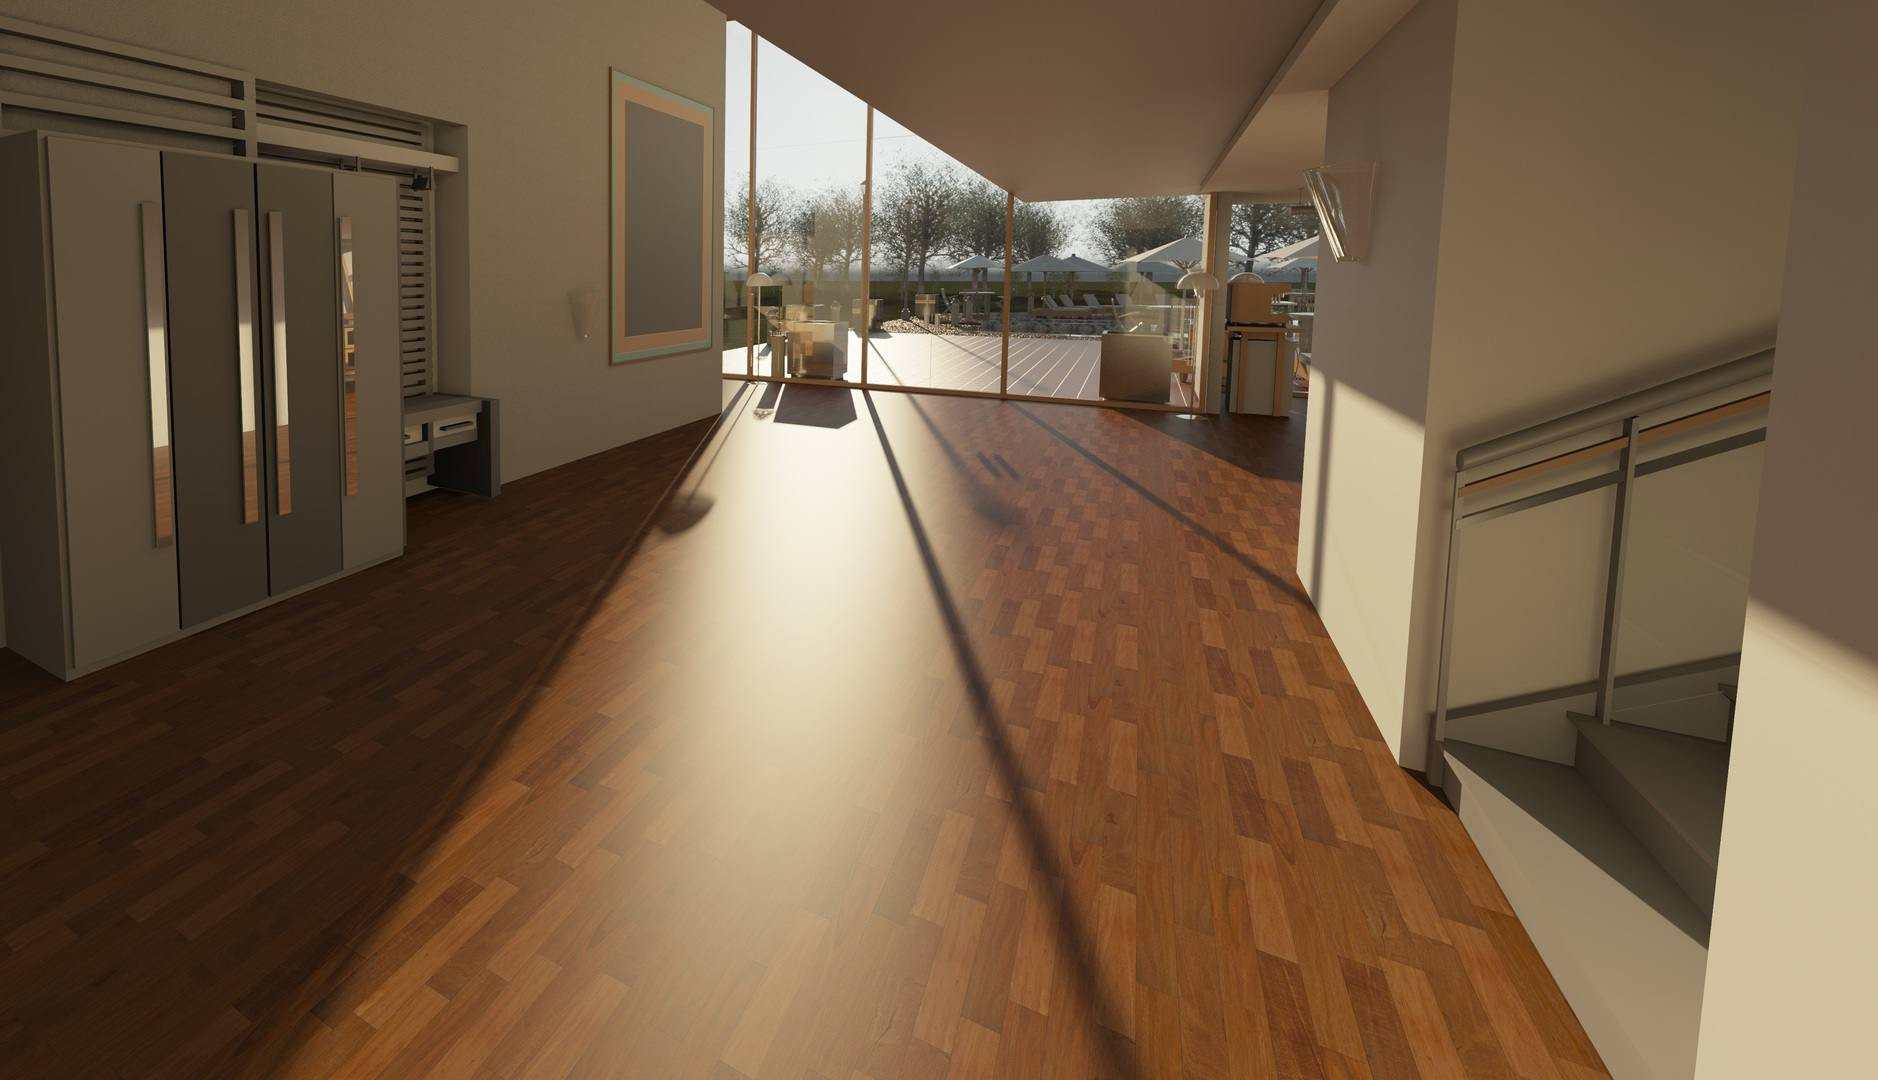 hardwood floors and tile flooring combination of common flooring types currently used in renovation and building inside architecture wood house floor interior window 917178 pxhere com 5ba27a2cc9e77c00503b27b9